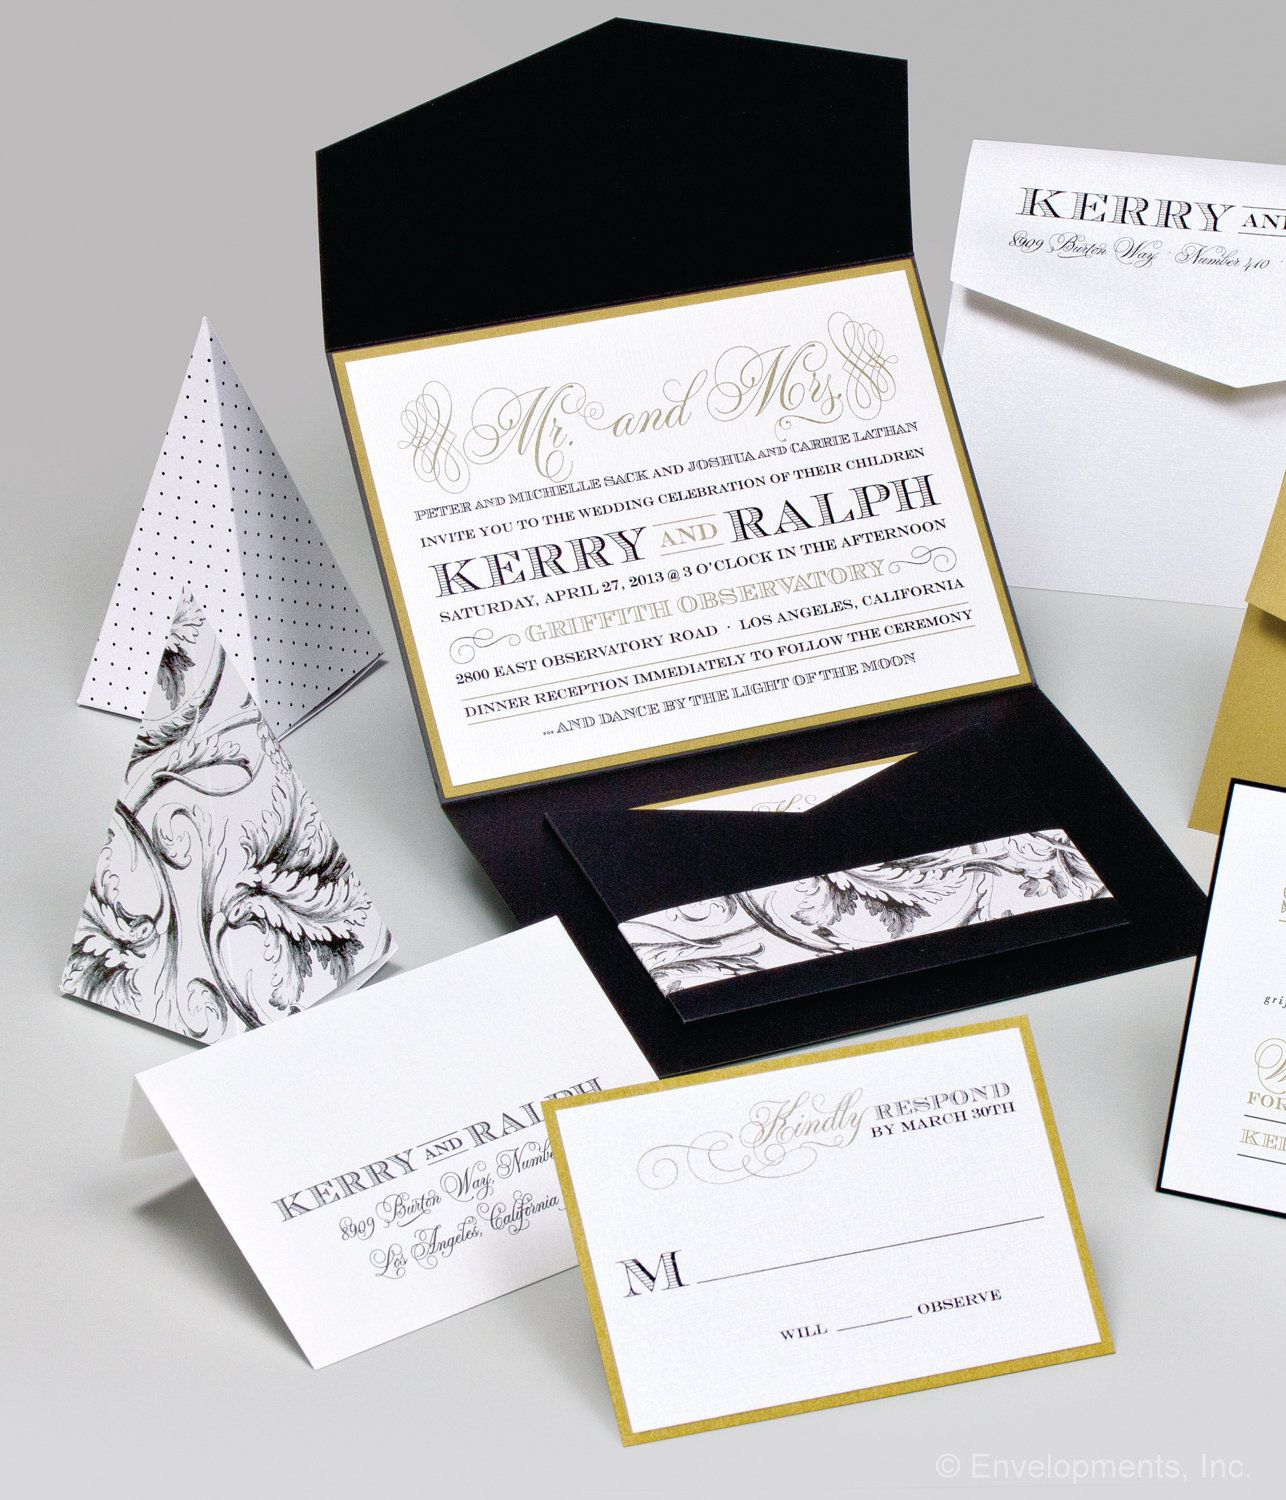 Black and gold formal pocket wedding invitation kerry and ralph black and gold formal pocket wedding invitation kerry and ralph 810 via etsy monicamarmolfo Image collections